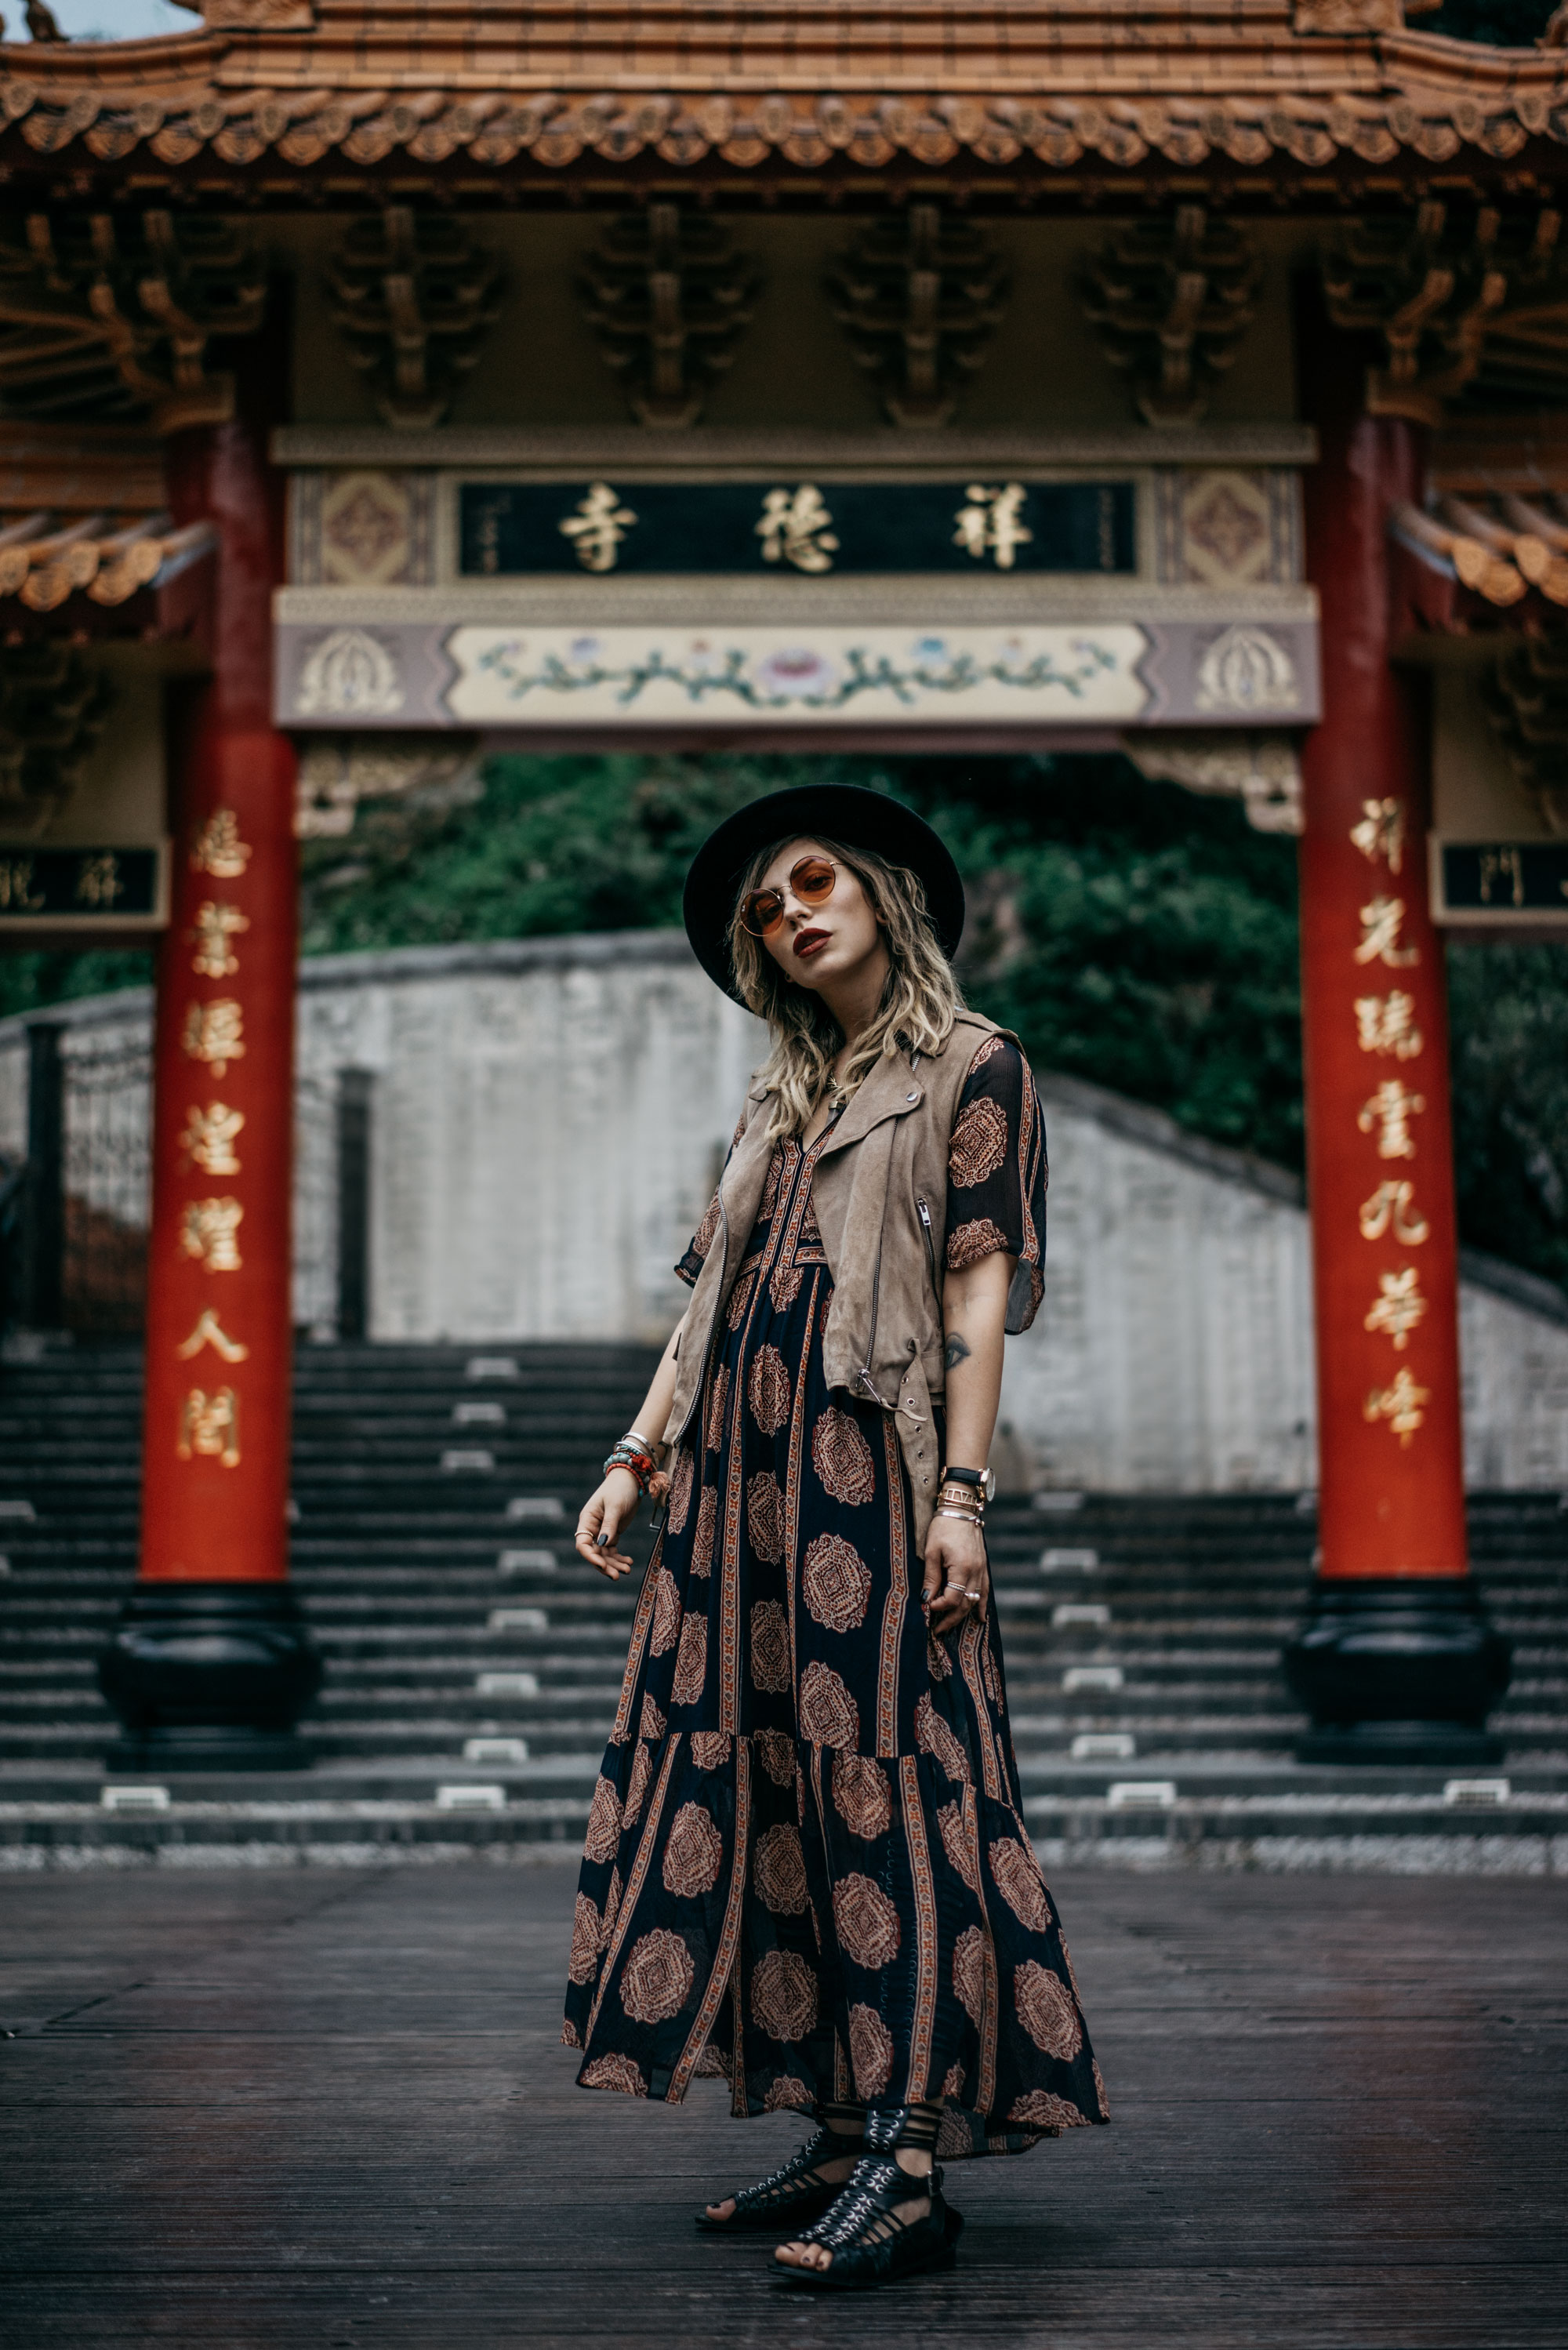 my trip in Taiwan | Taroko national park | temple | long maxi dress from Bash | sandals from Diesel Black Gold | chinese gate with characters | xiulin